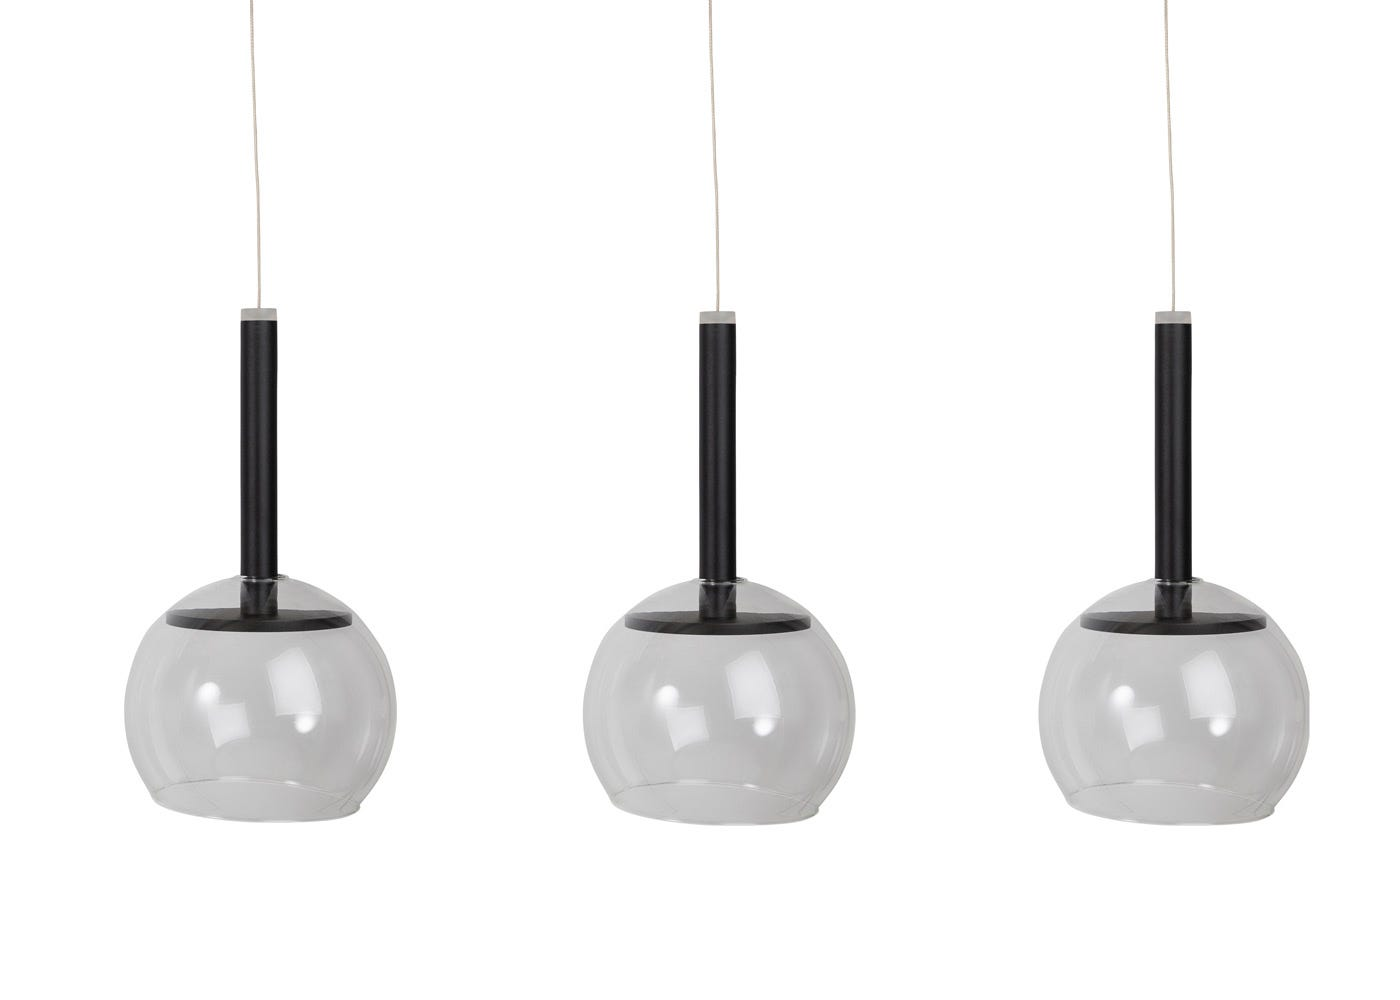 Disc 3 long LED pendant in black with clear glass shades (sold separately).